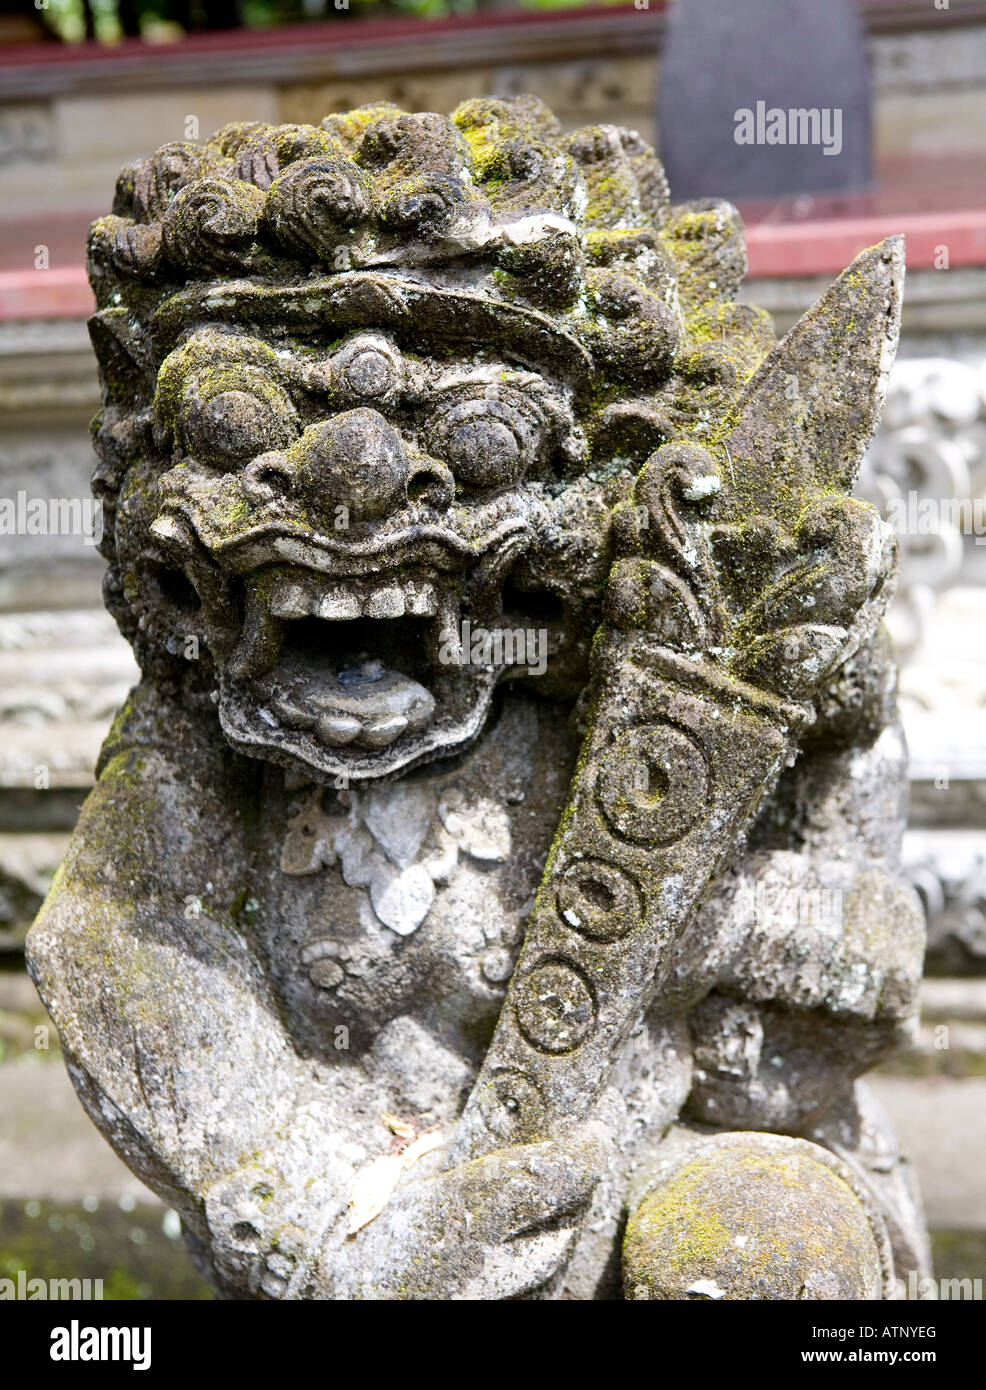 Decorated Animalistic Temple Carving With A Green Mould Face Ubud Bali Indonesia - Stock Image